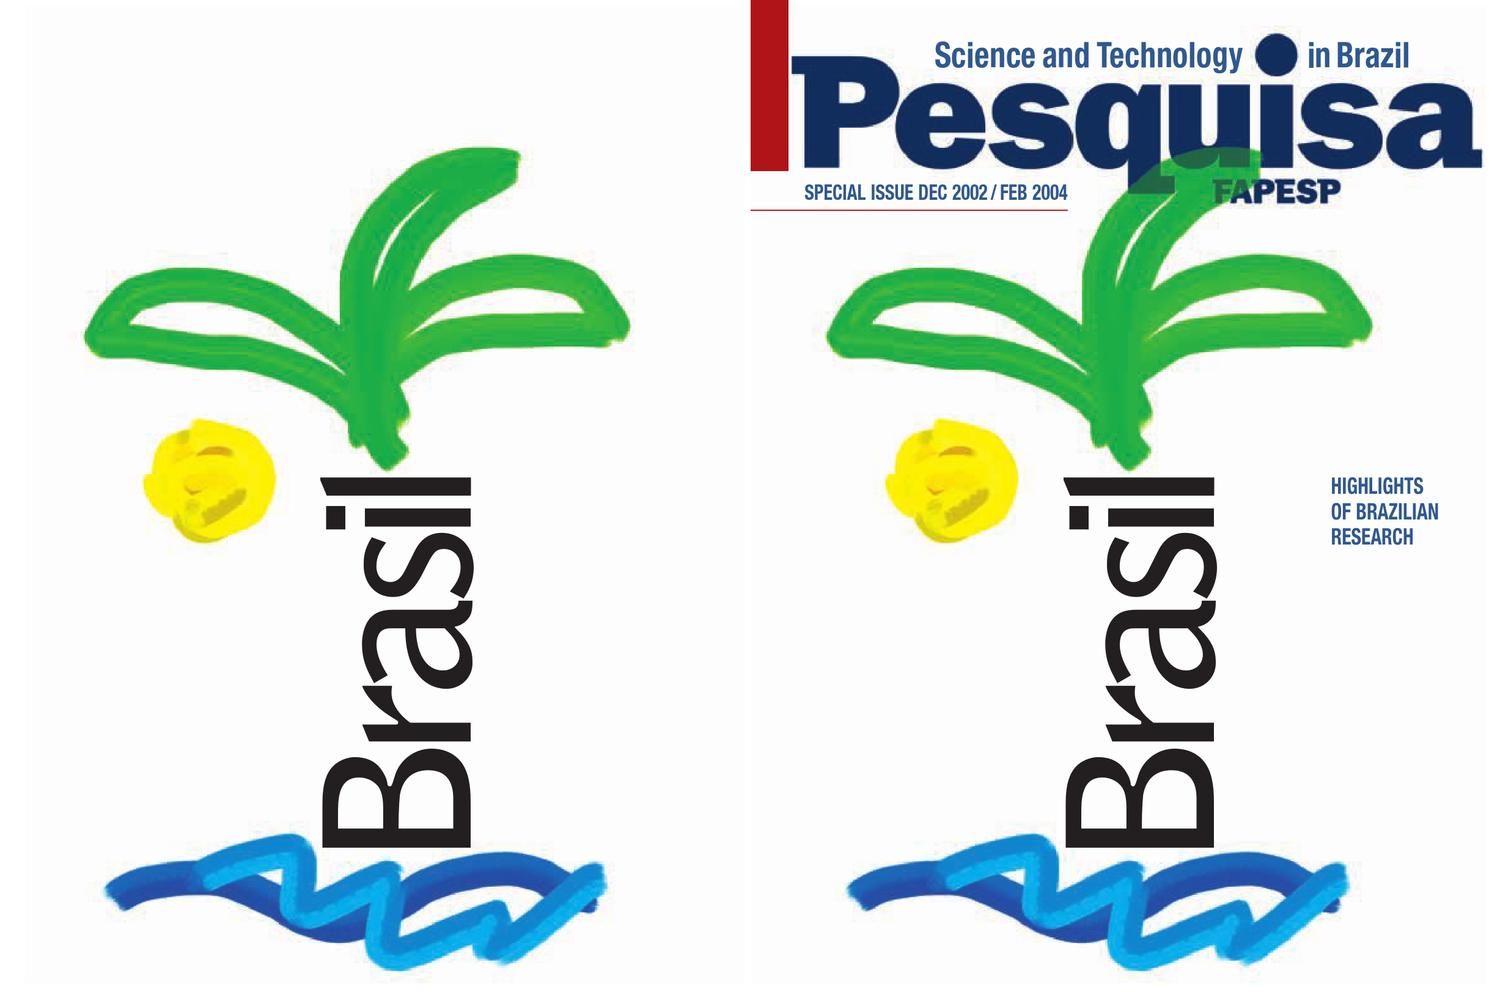 Special Issue 2002-2004 by Pesquisa Fapesp - issuu 932fa5b8d6ba